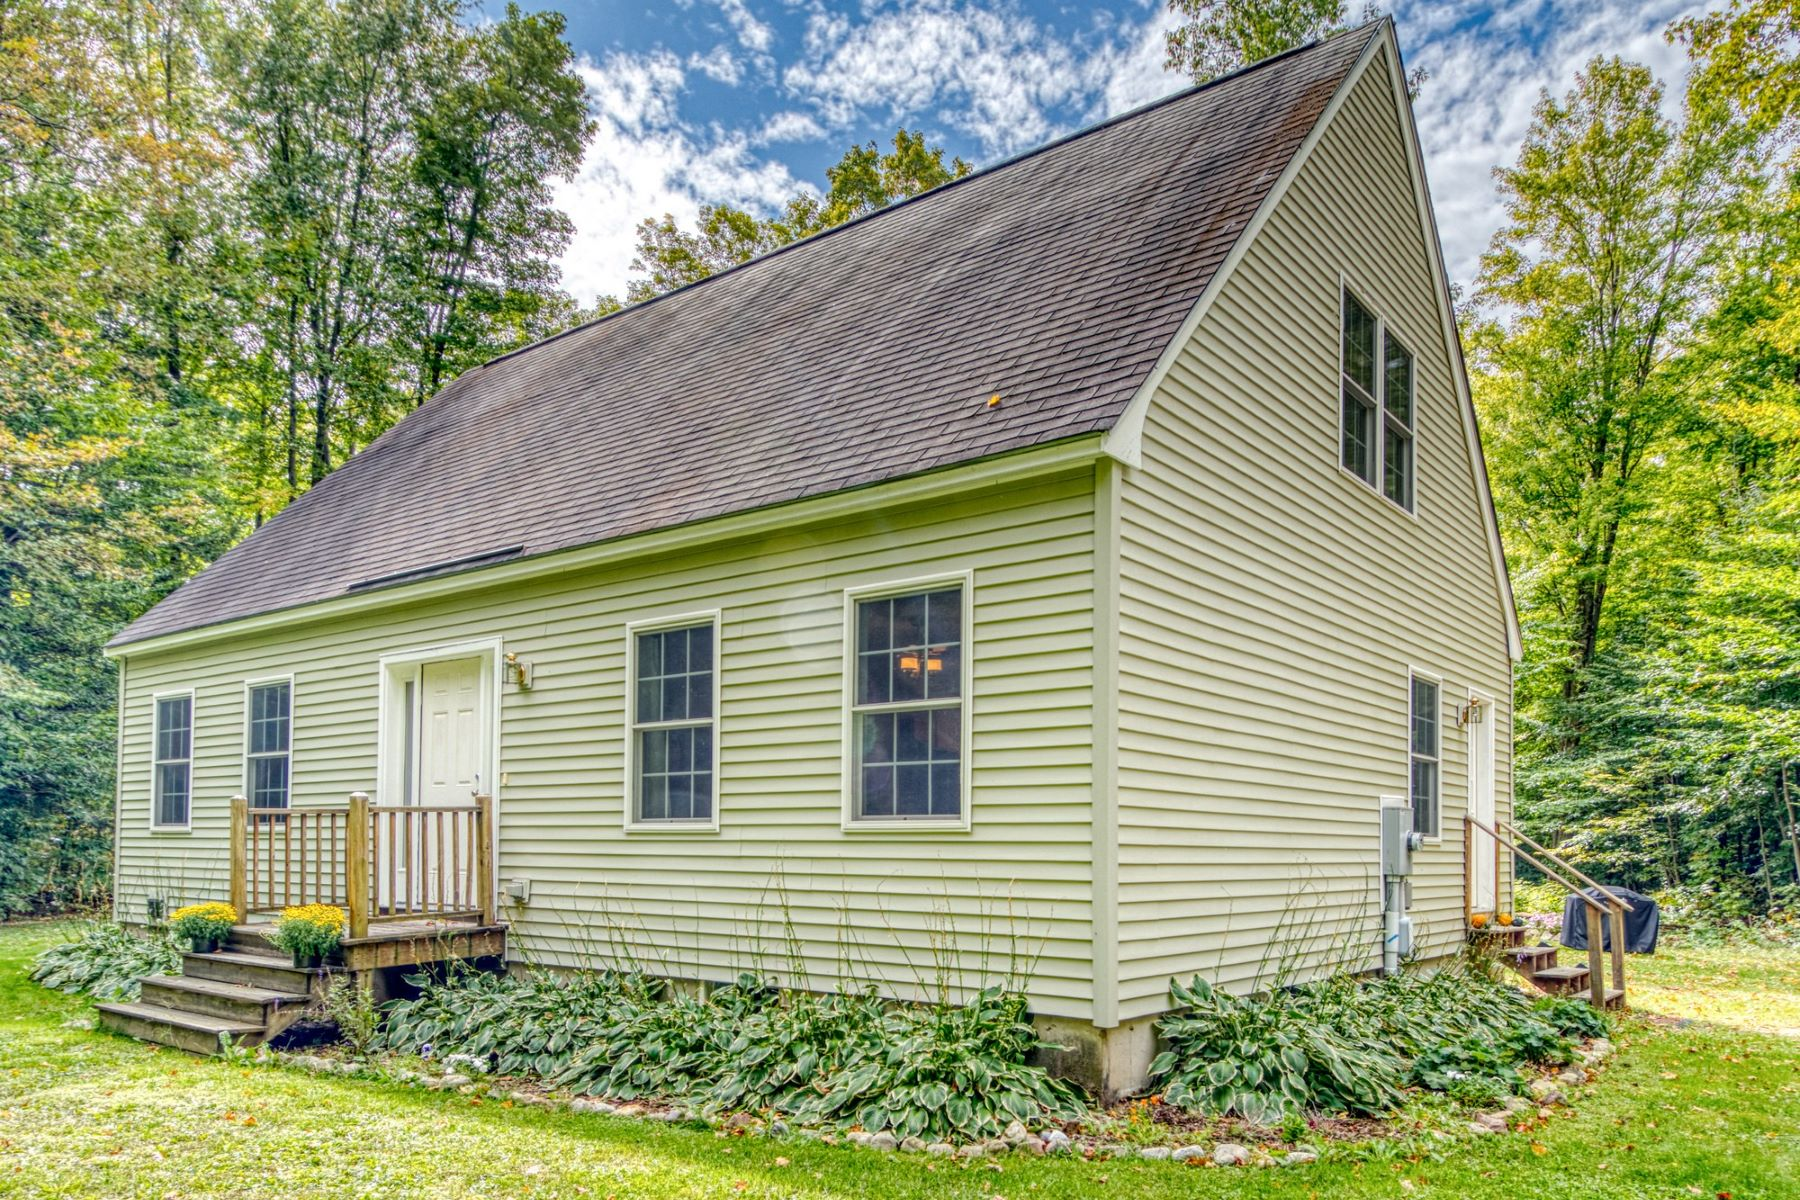 Single Family Homes for Sale at 1124 Cobble Road, Middlebury 1124 Cobble Rd Middlebury, Vermont 05753 United States